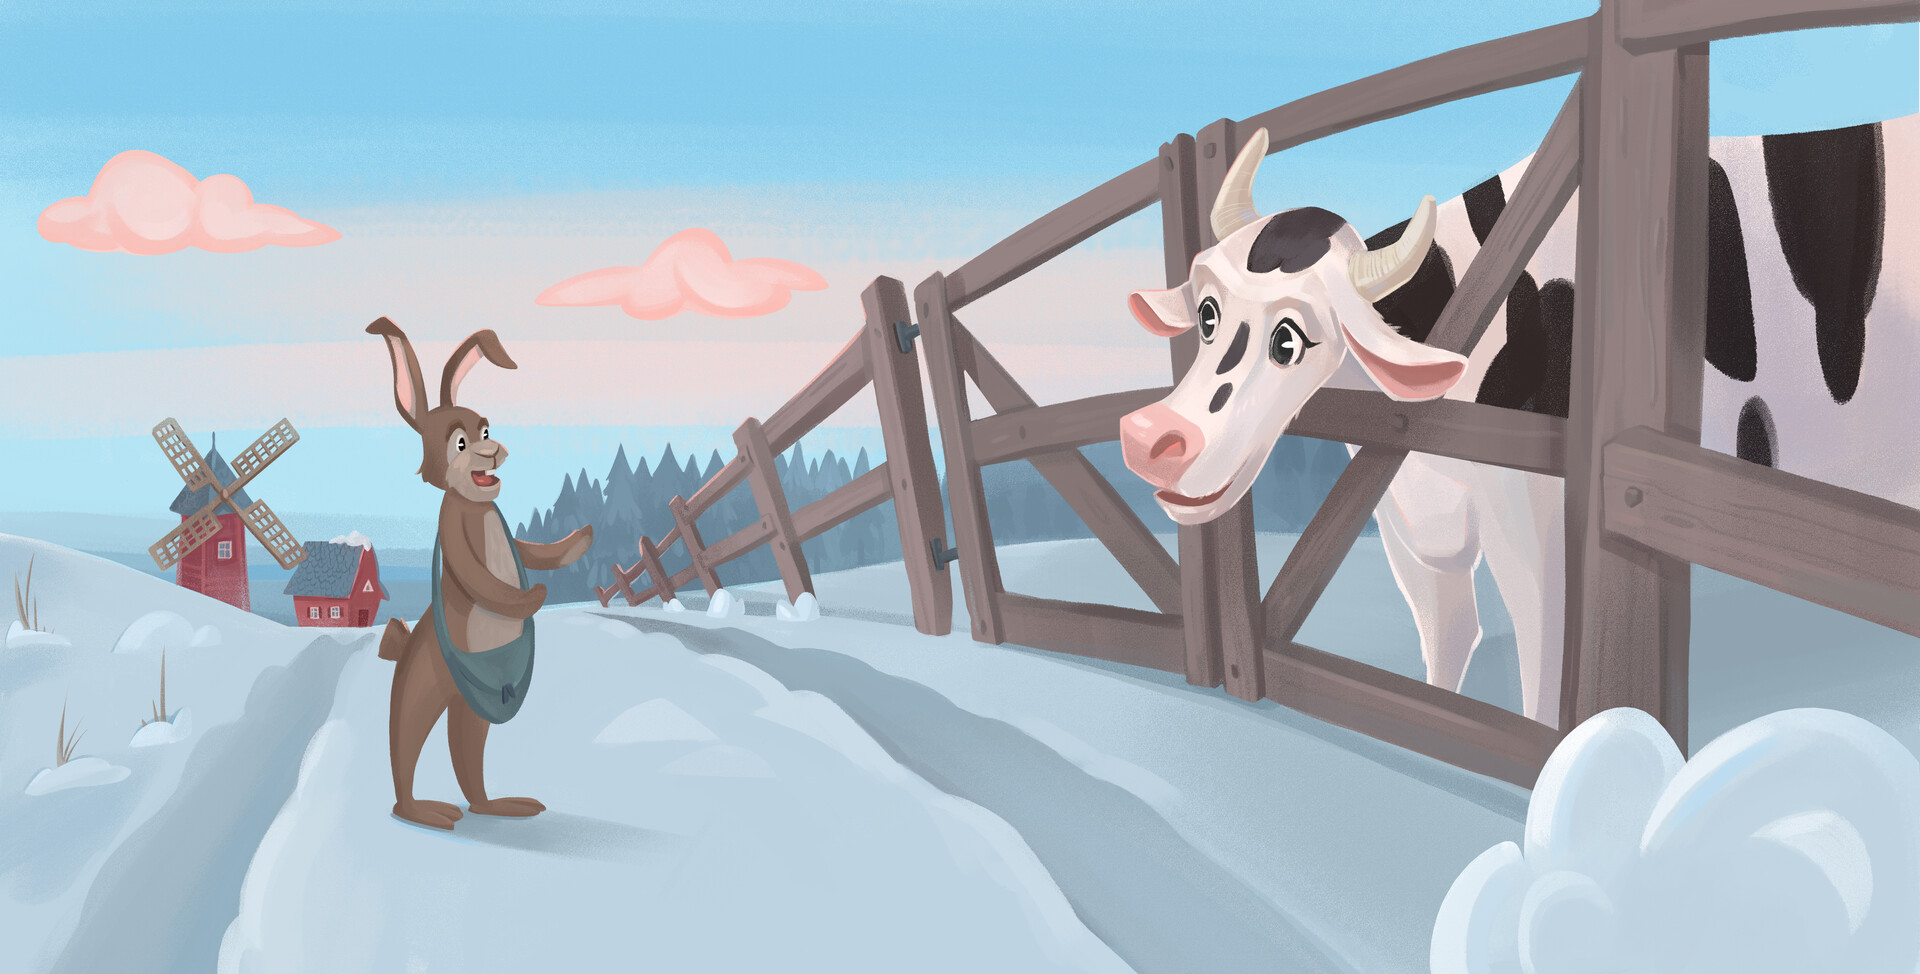 Clyde stopped and asked  the cow if she could help him find some food.